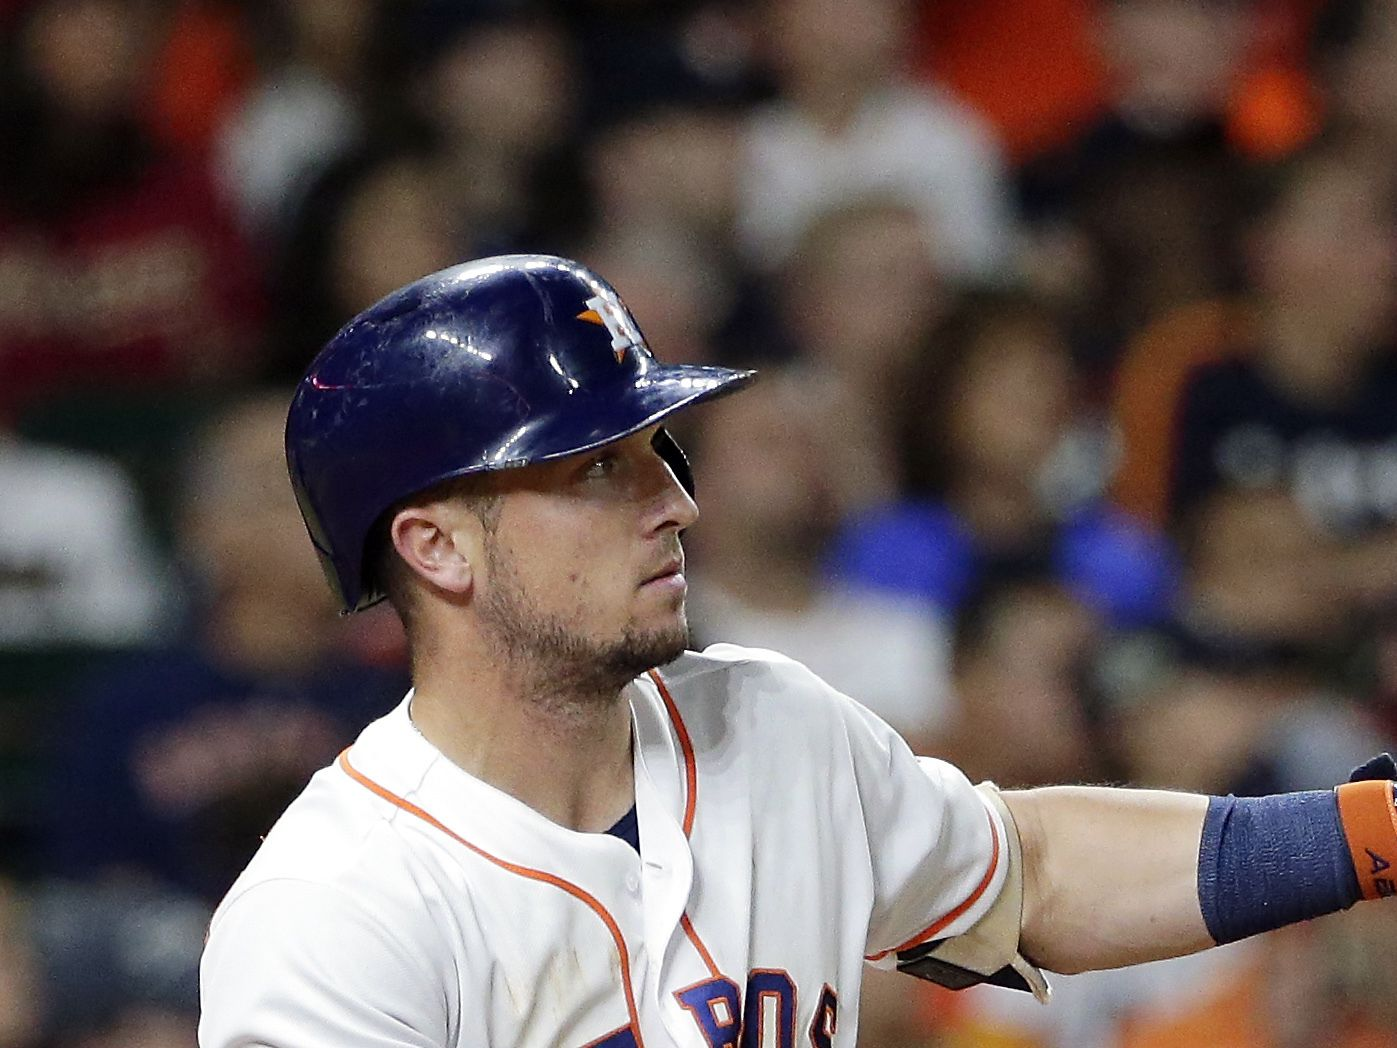 Astros sign Alex Bregman to five-year, $100 million contract extension